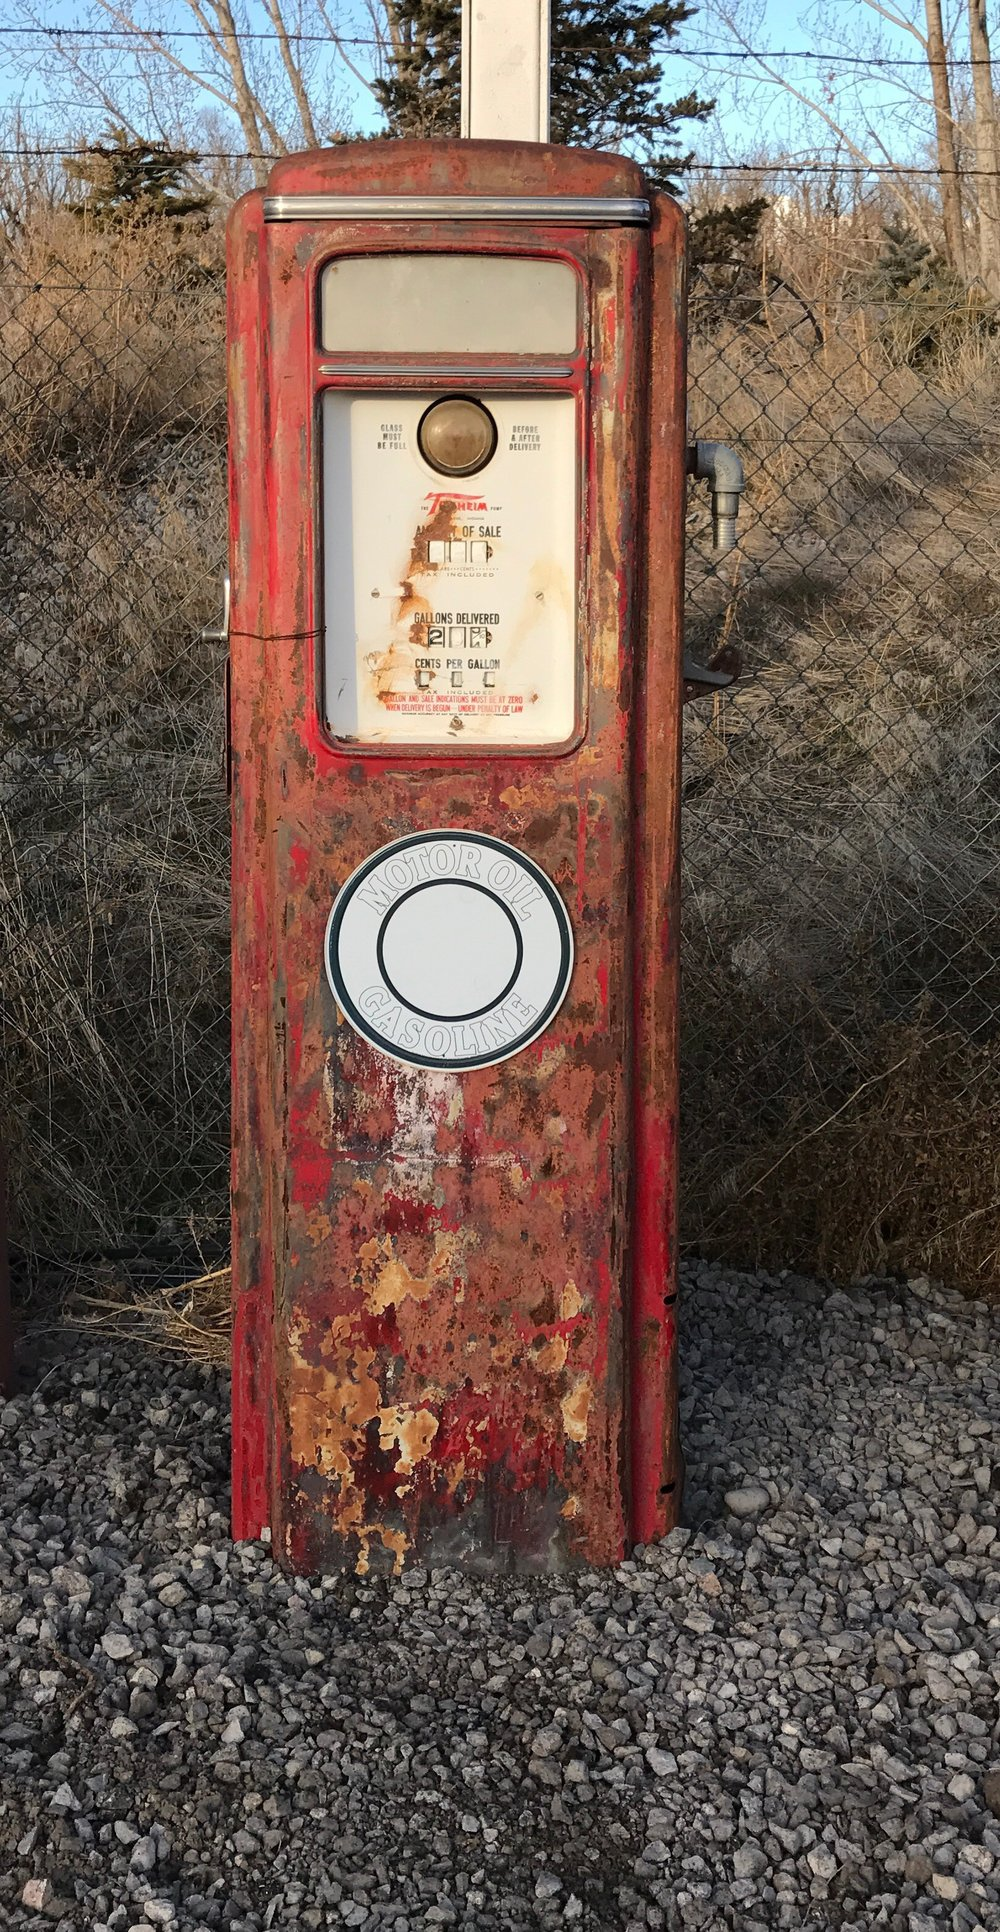 - This gas pump is called a Tokheim 39 Tall Pump. It is circa 1939 vintage and was one of Tokheims first